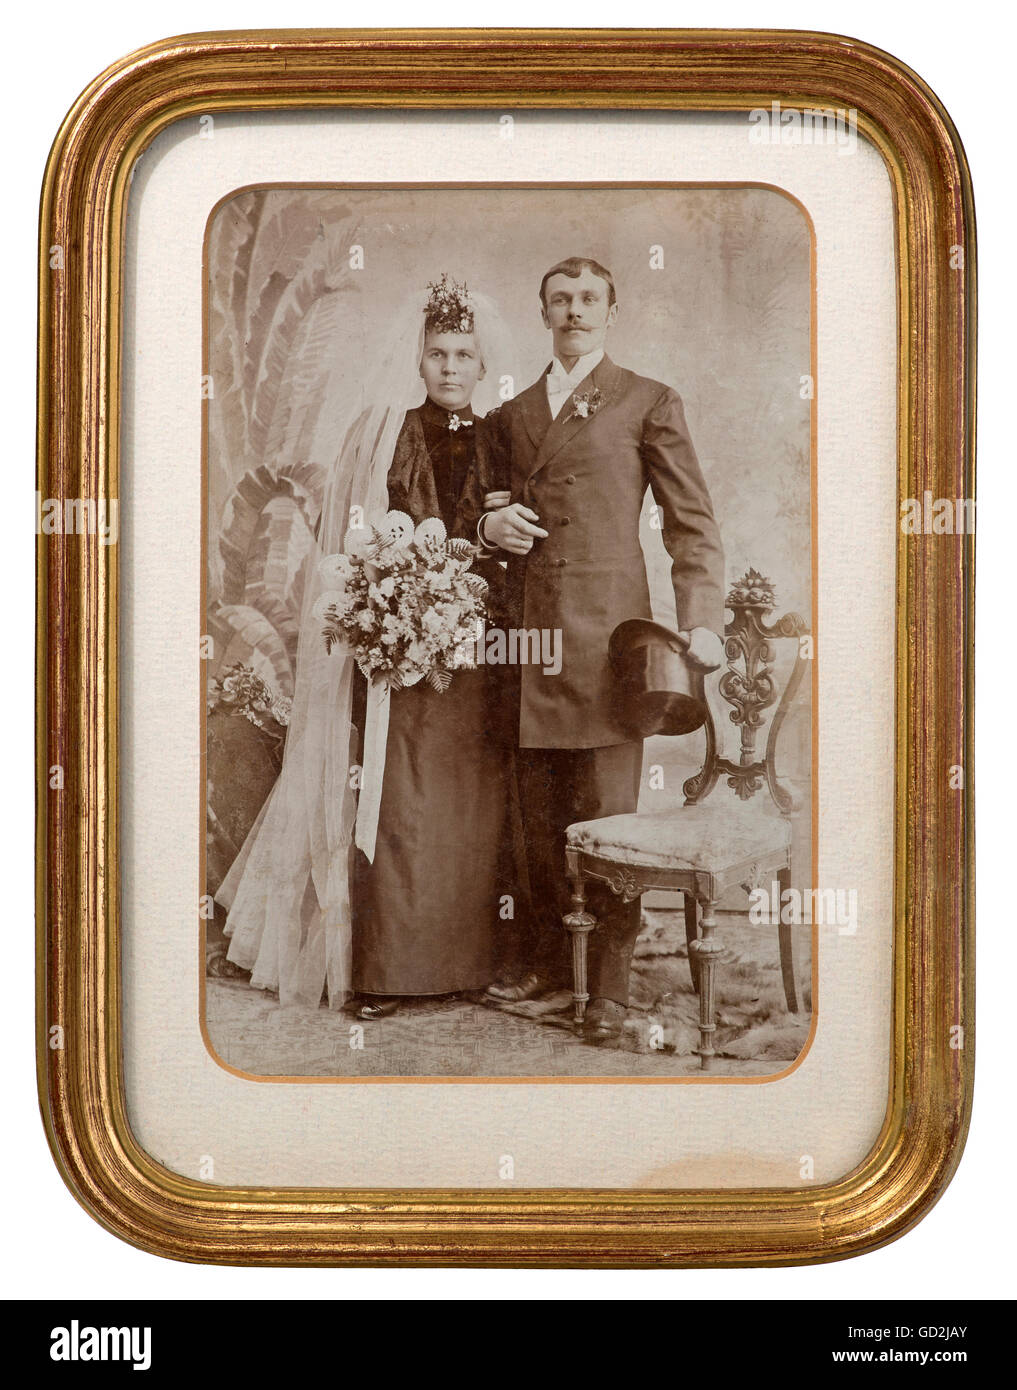 people, couples, bridal couple, wedding photo in the gilt frame, Germany, circa 1890, Additional-Rights-Clearences - Stock Image